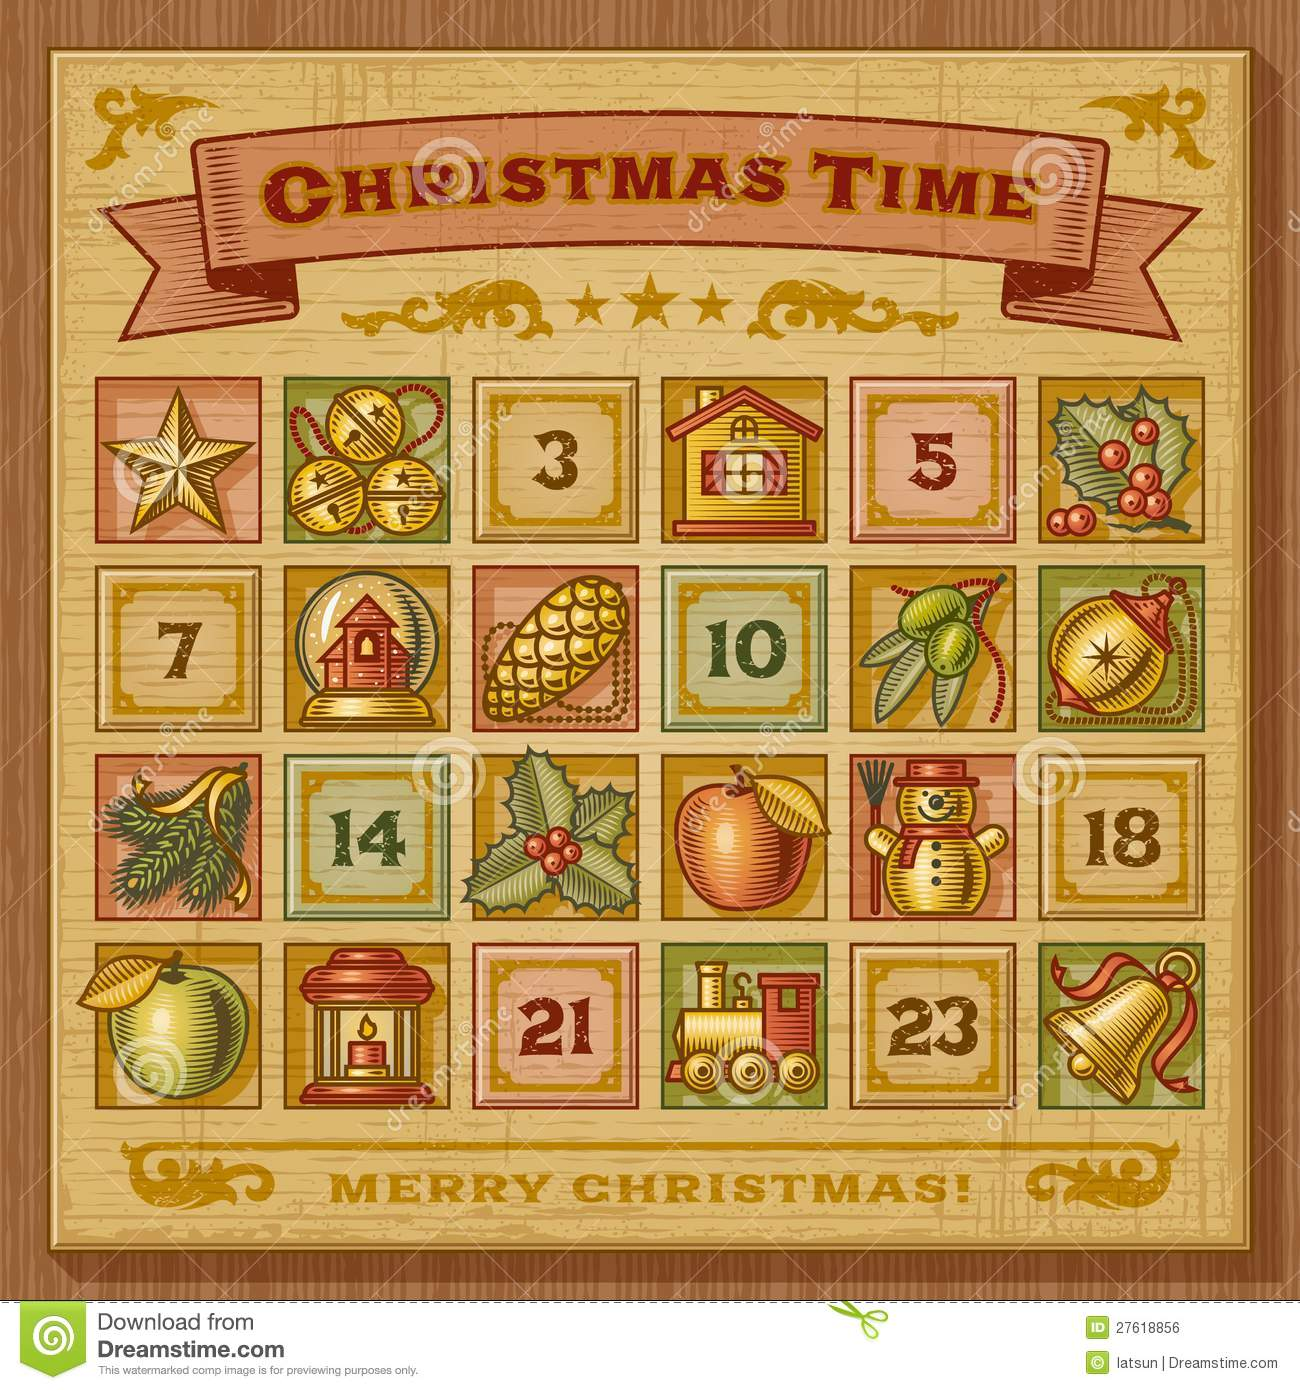 Vintage Christmas Advent Calendar Stock Vector ...